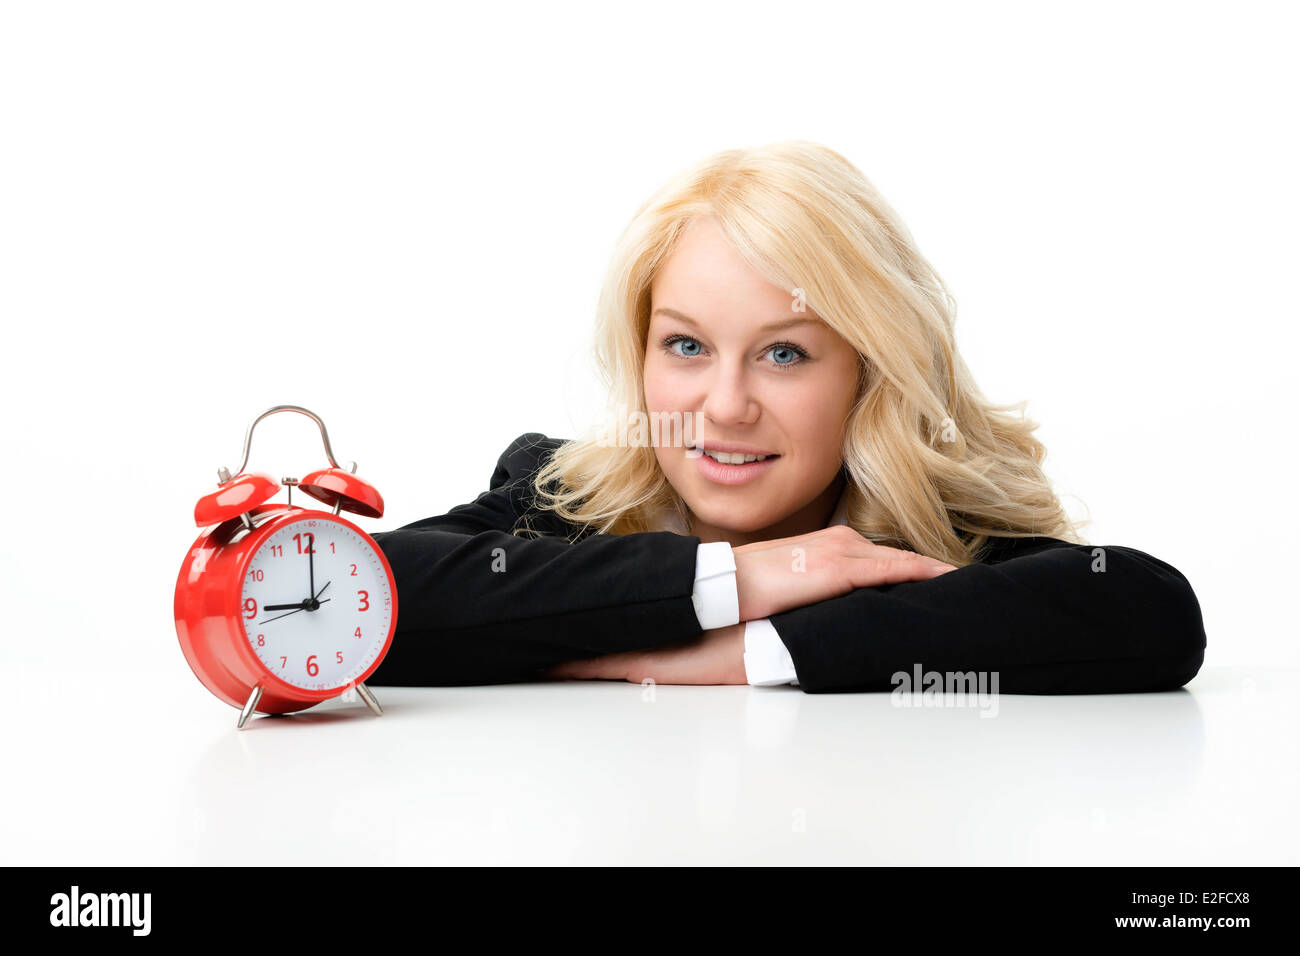 Laughing blond woman with red alarm clock - Stock Image